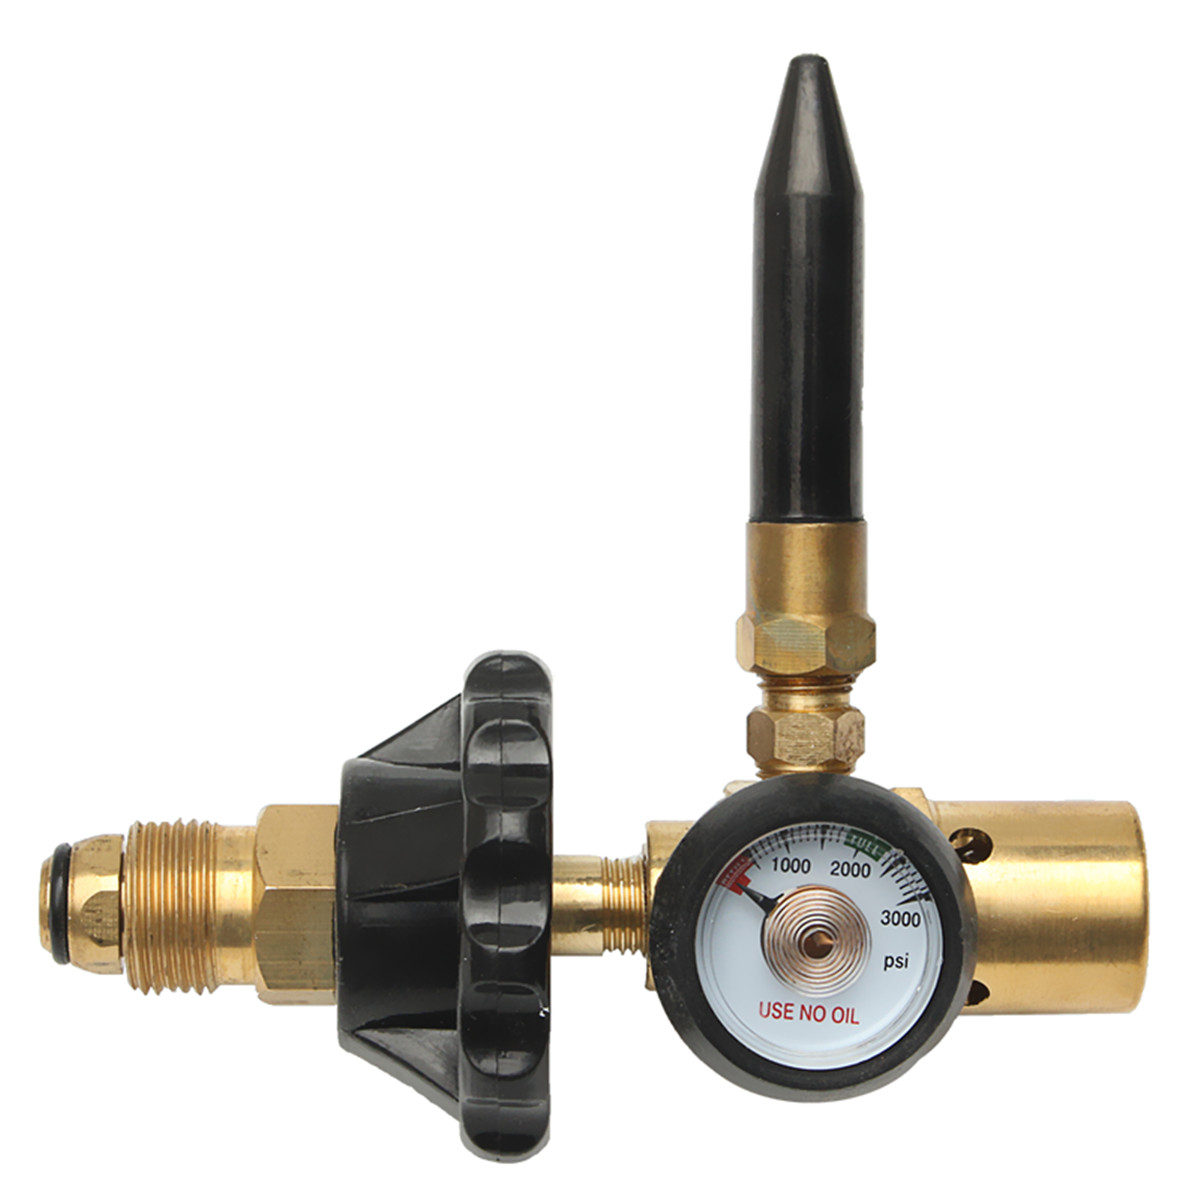 Durable Brass Helium Latex Balloon Inflator Regulator With Pressure Gauge For CGA 580 Valves Mayitr 145*135mm